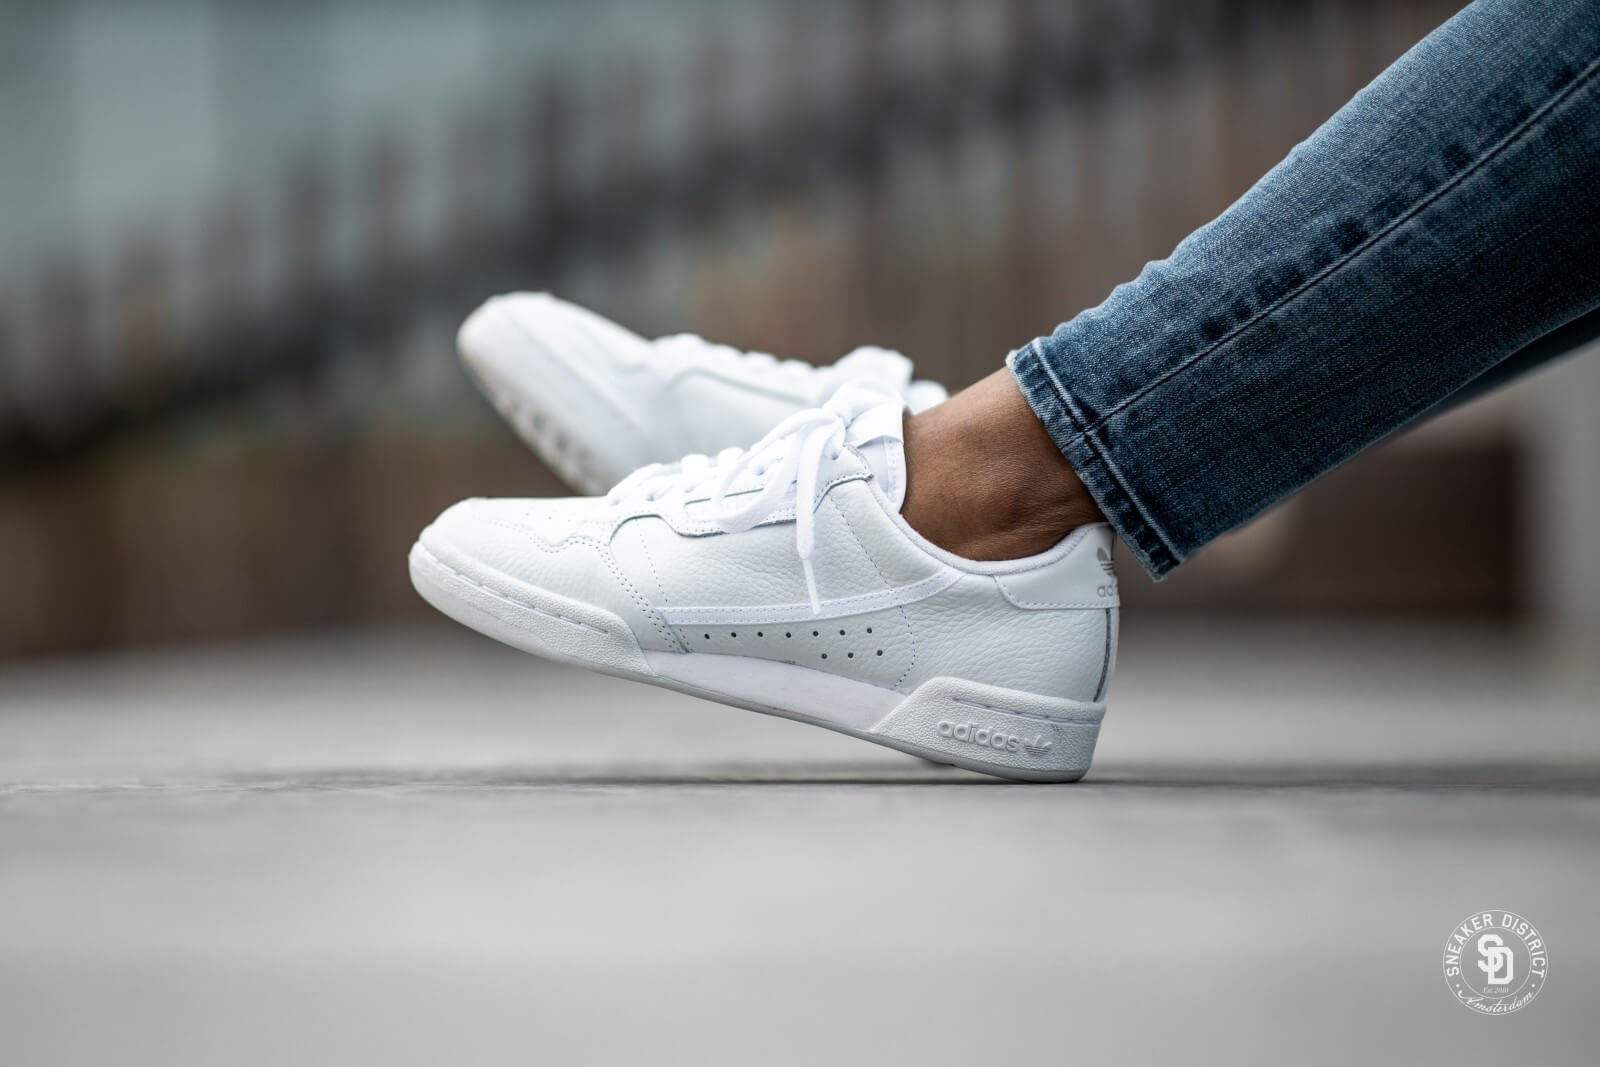 Adidas Continental 80 Footwear White/Grey - CG7120